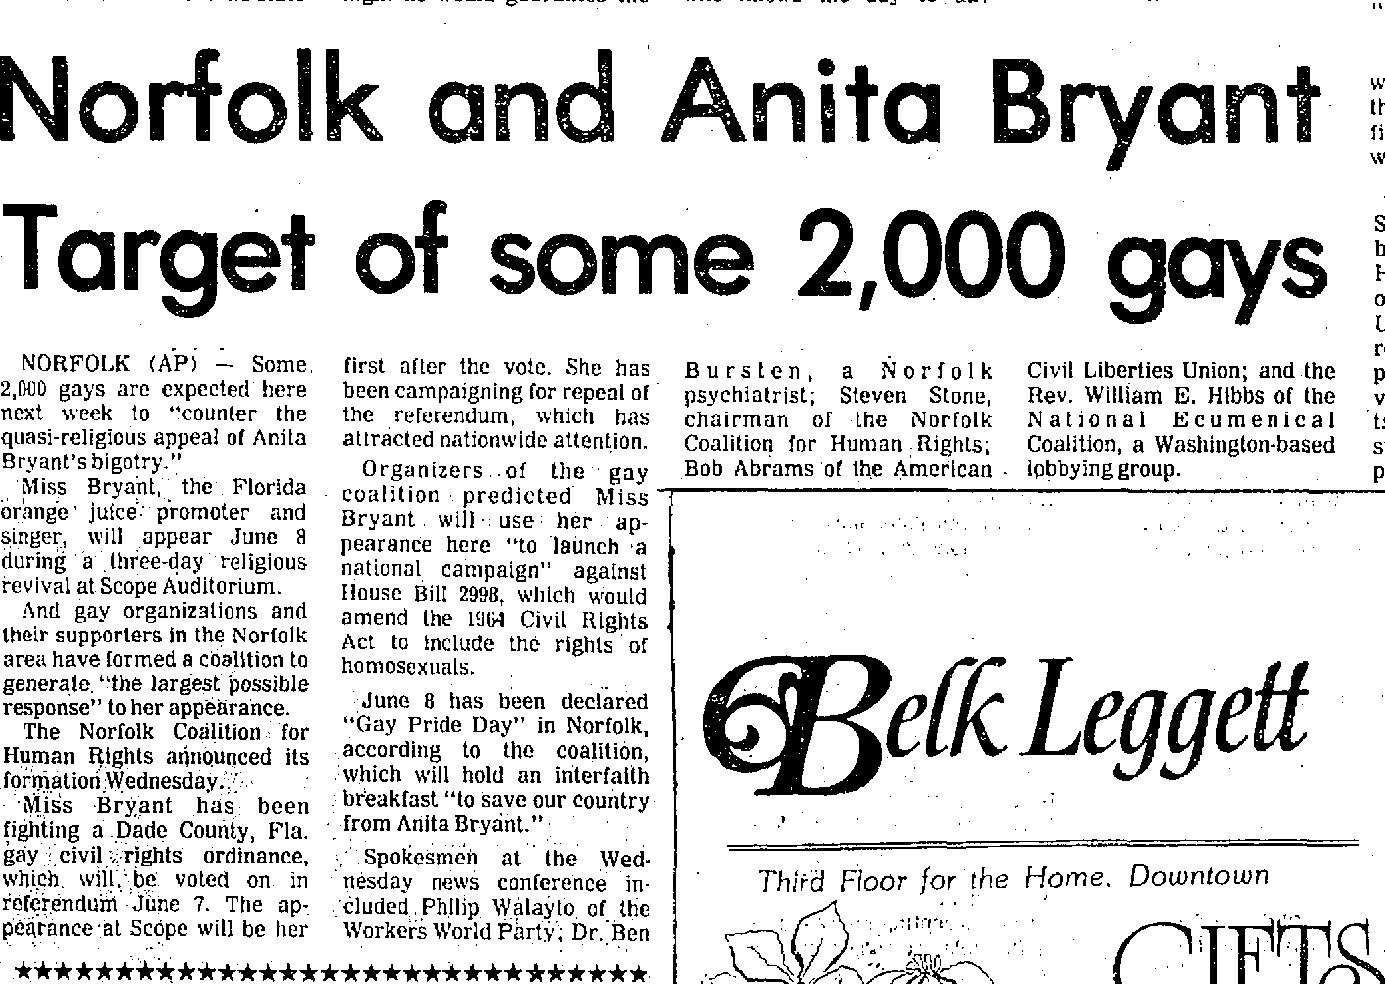 Danville Bee June 2, 1977. Opponents of gay rights warned that the Norfolk protesters hoped to expand the 1964 Civil Rights Bill to include protections for the civil rights of homosexuals.